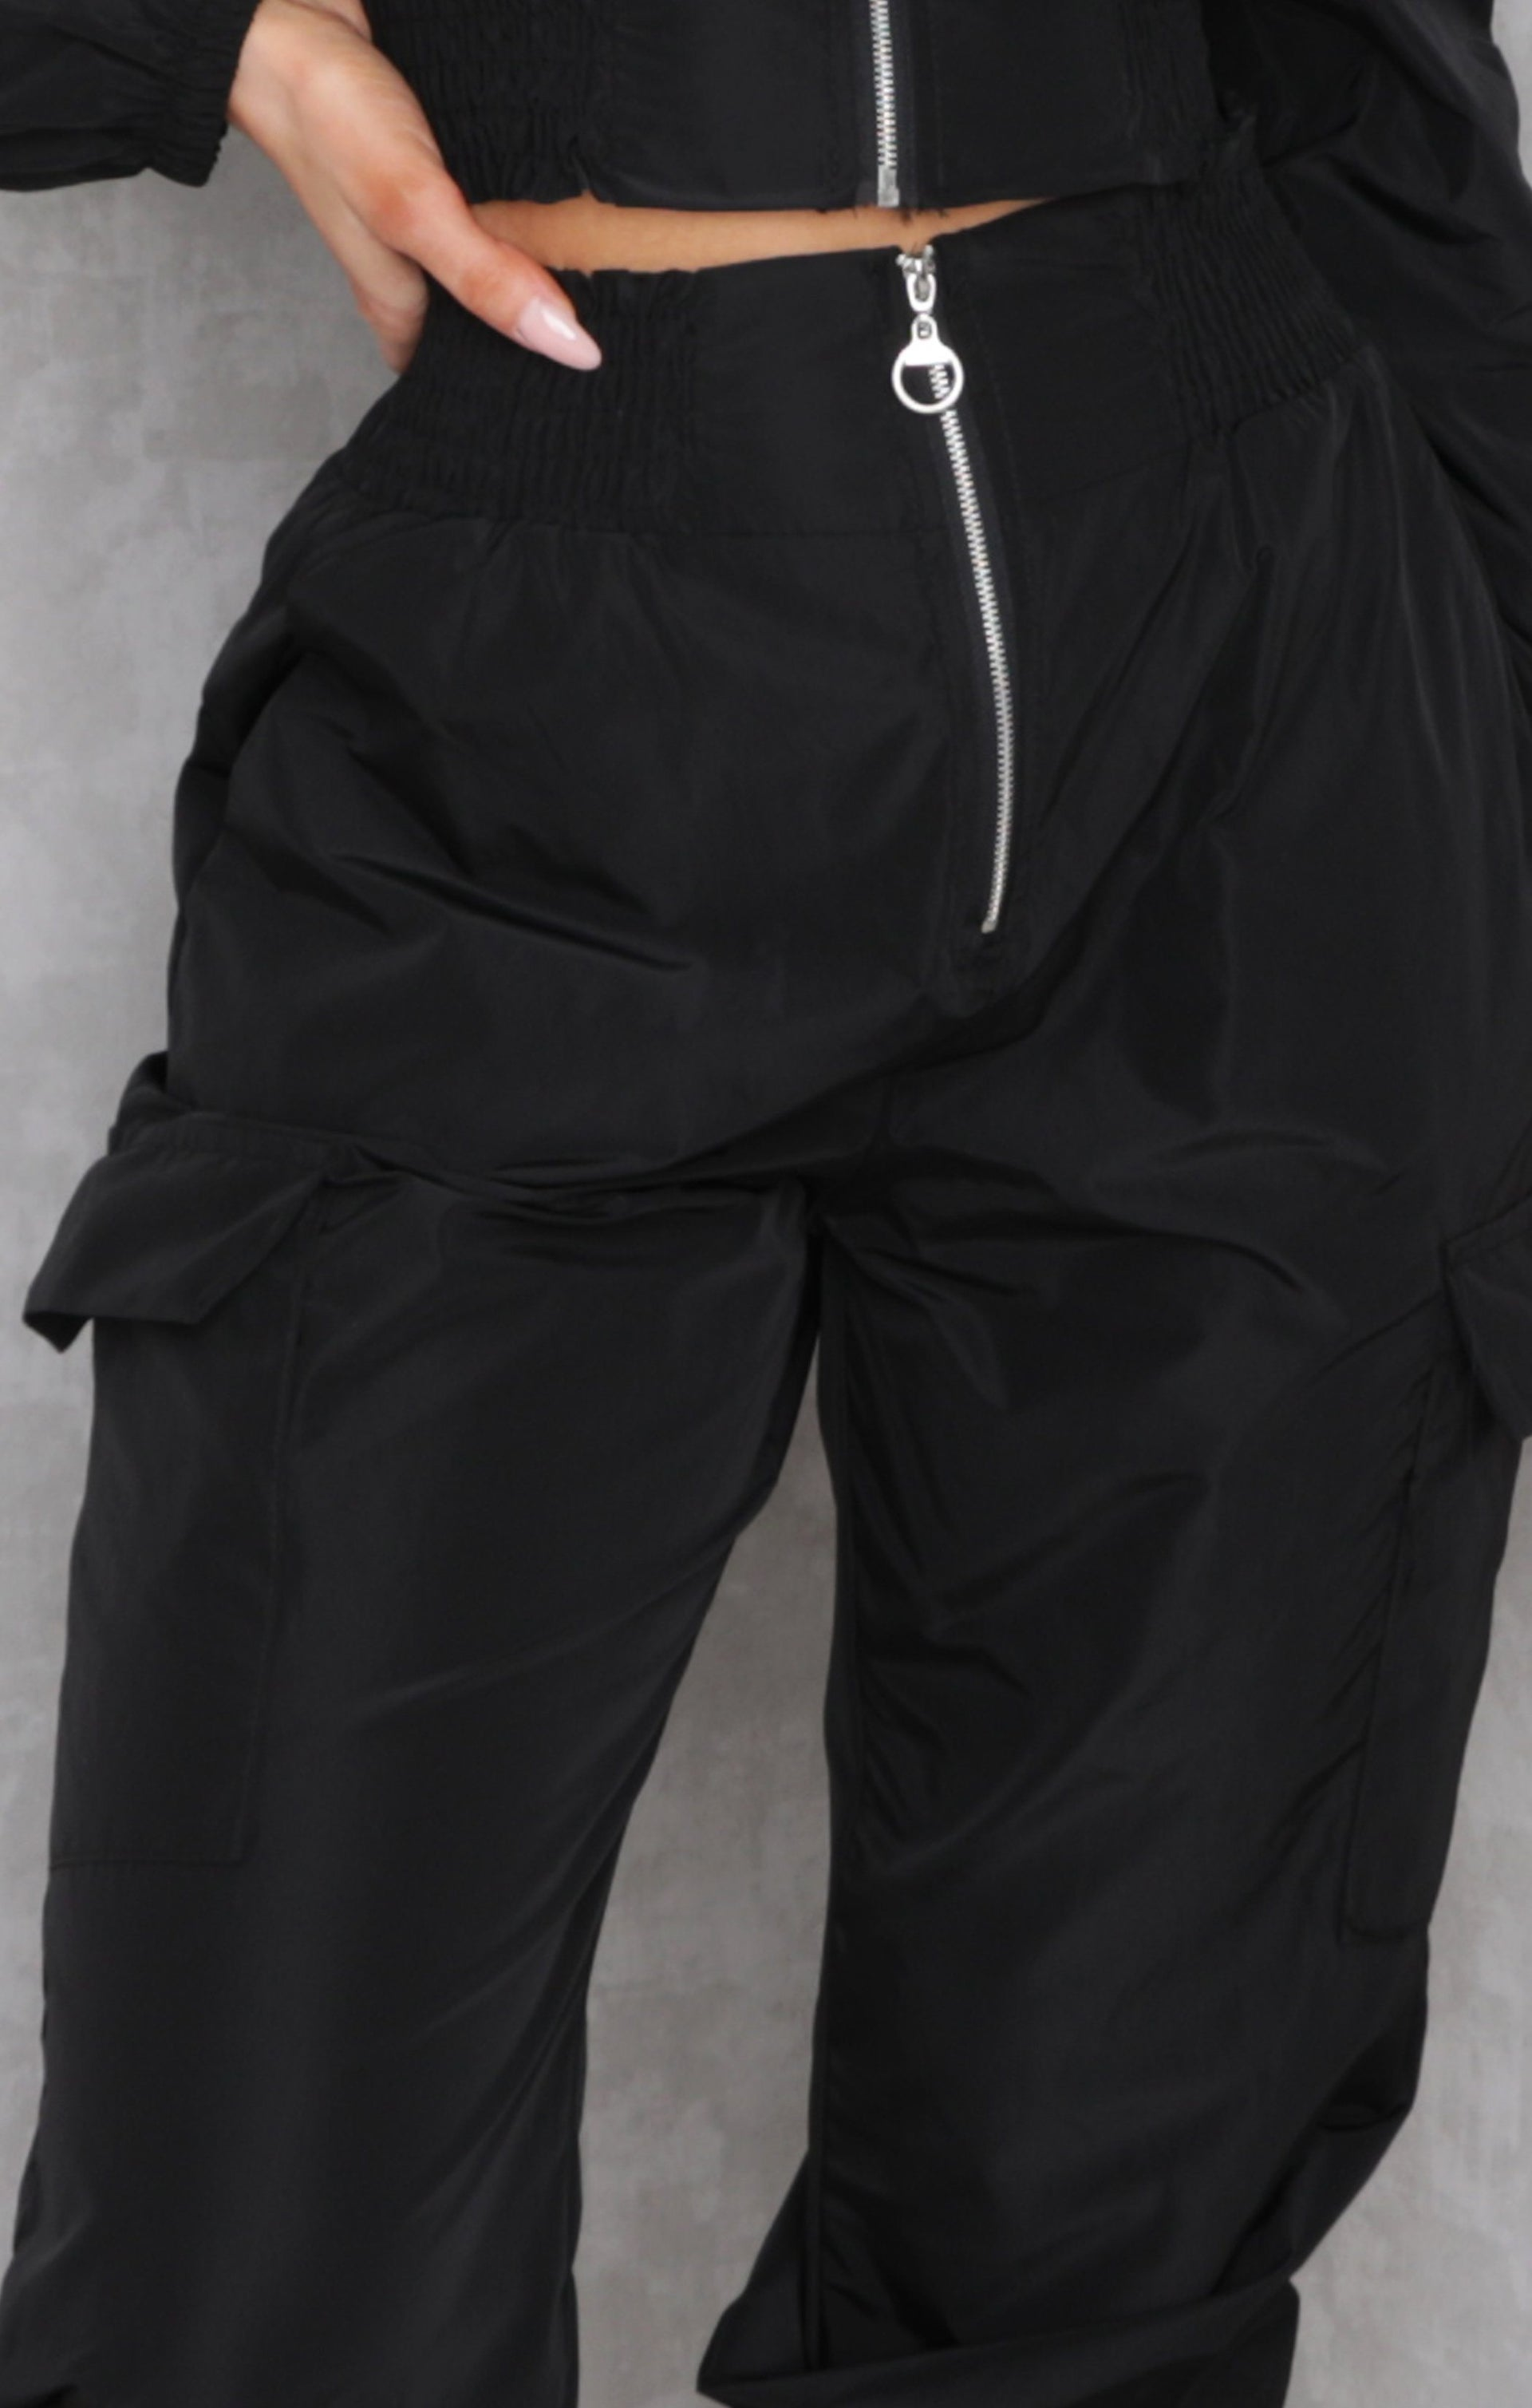 Black Shrilled Waist Cuffed Leg Loungewear Set - Cindy